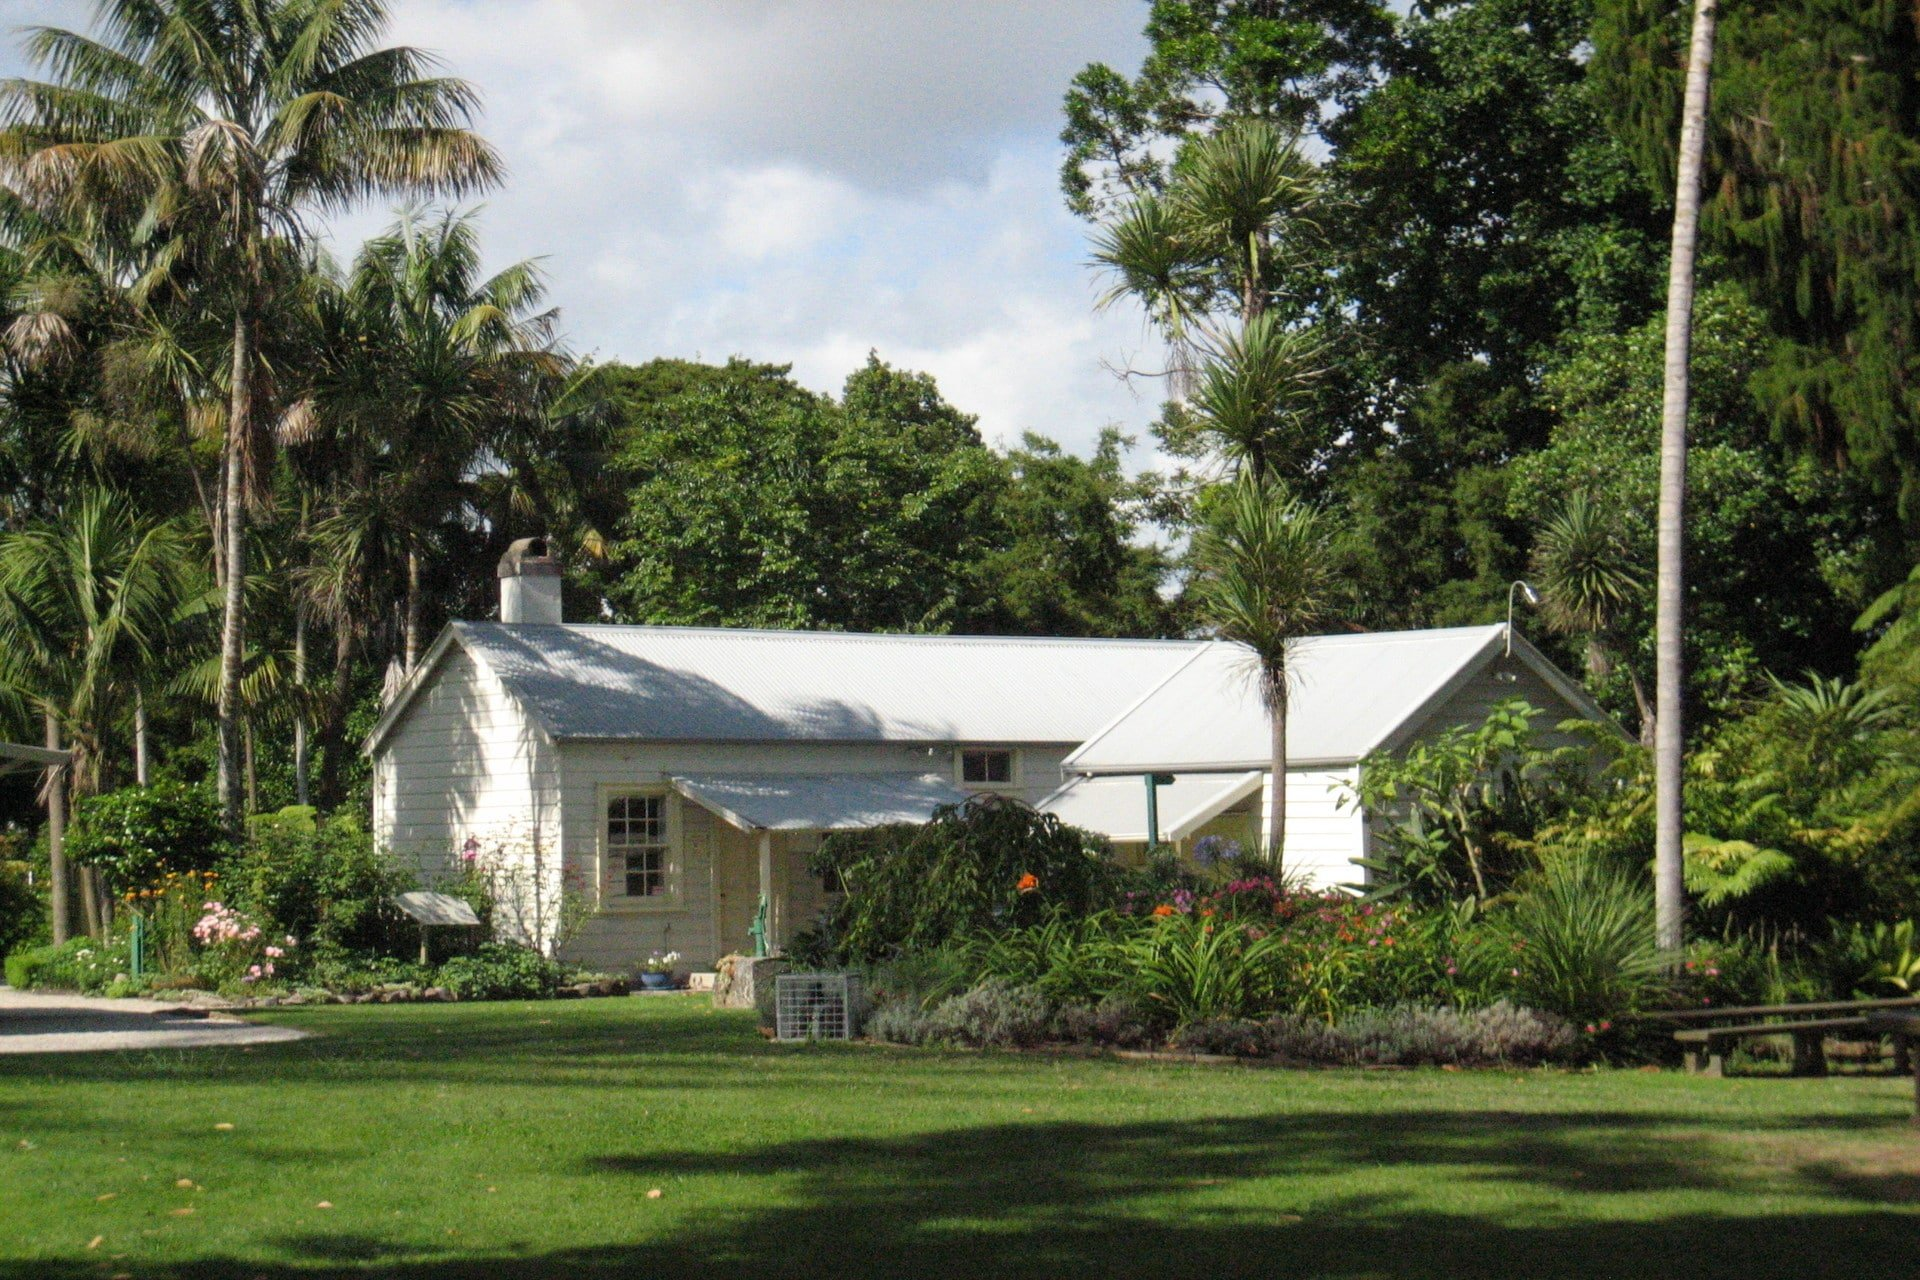 The-Elms-Mission-House-and-yard